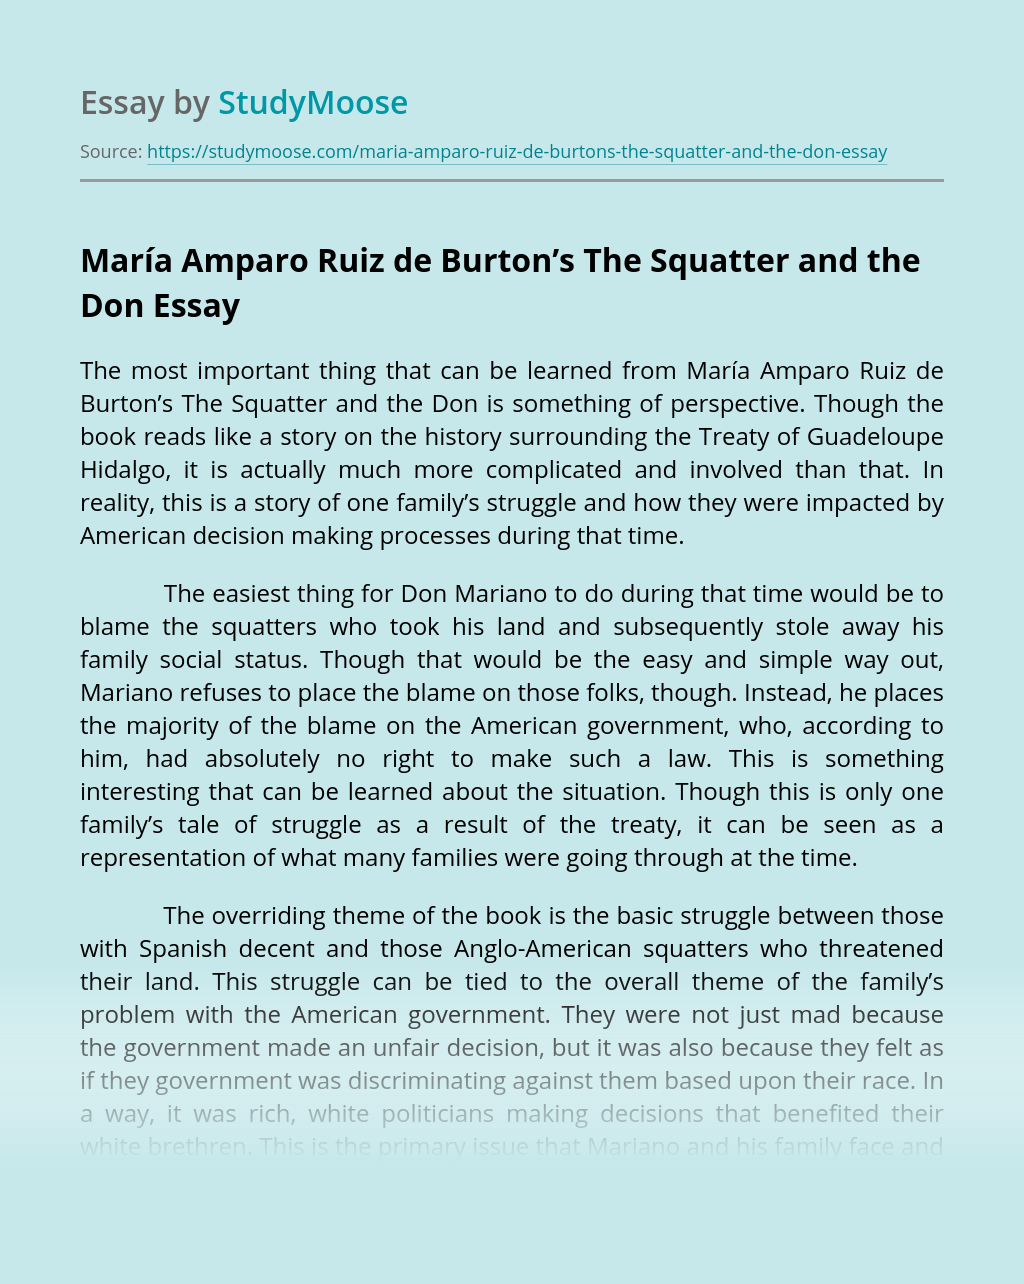 María Amparo Ruiz de Burton's The Squatter and the Don